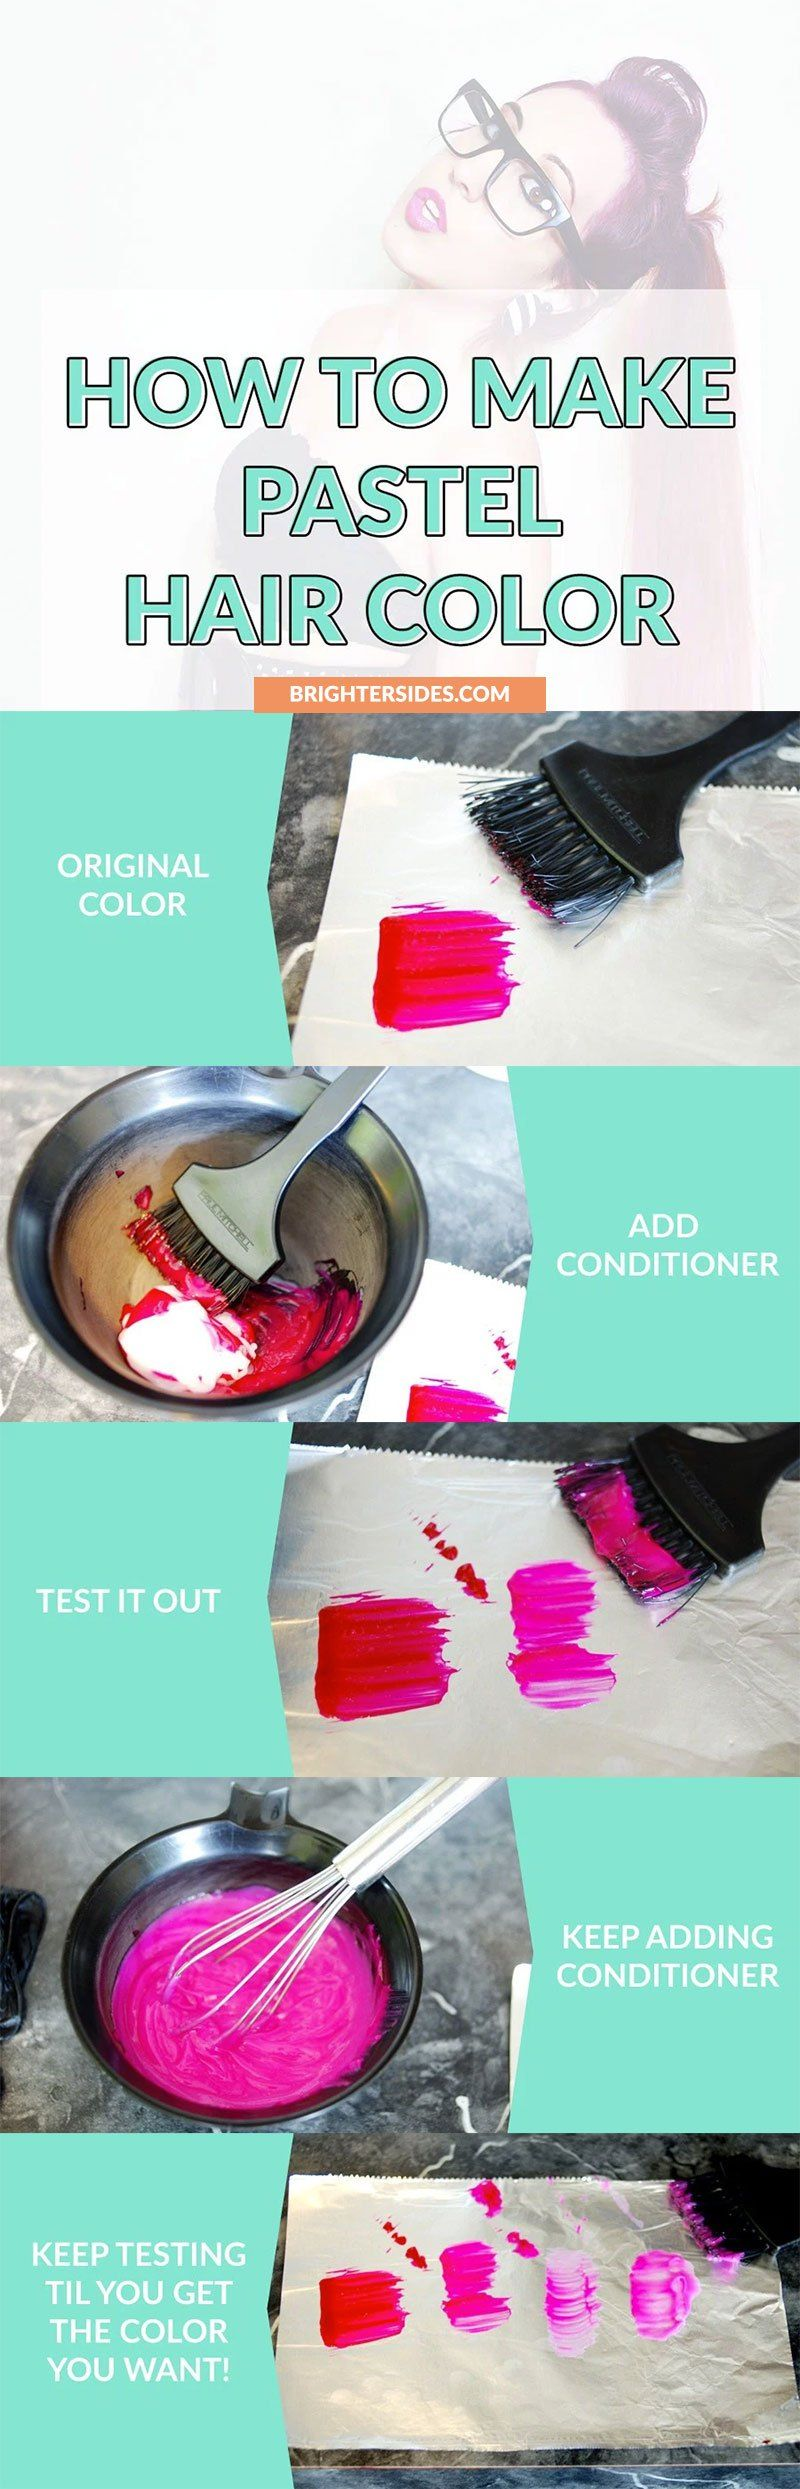 How To Make Your Own Diy Pastel Hair Dye And Save Money This Article Has Step By Step Instructions And Tips From A Hair Color Pastel Diy Hair Dye Pastel Hair